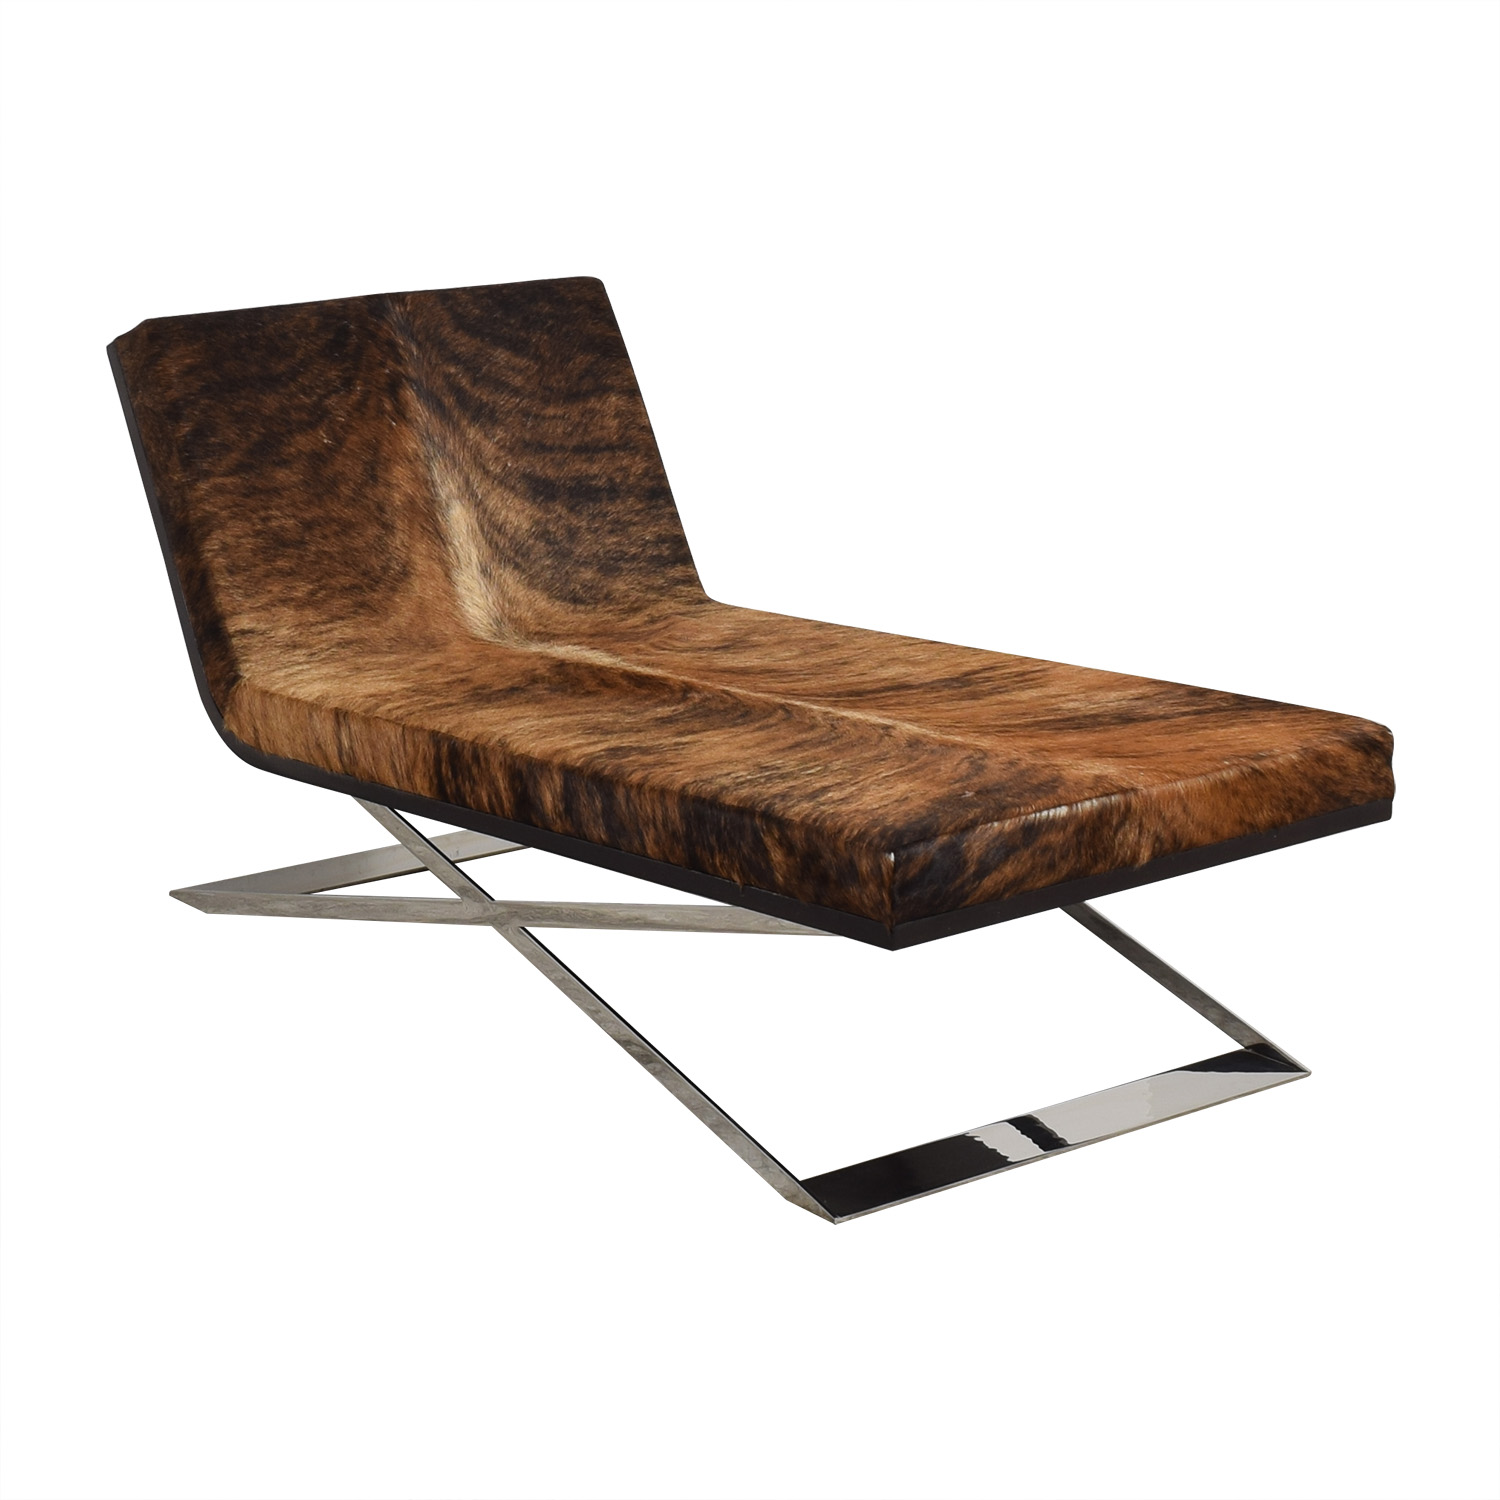 Moura Starr Moura Starr Kalup Chaise Lounge in Araca Cow Hide